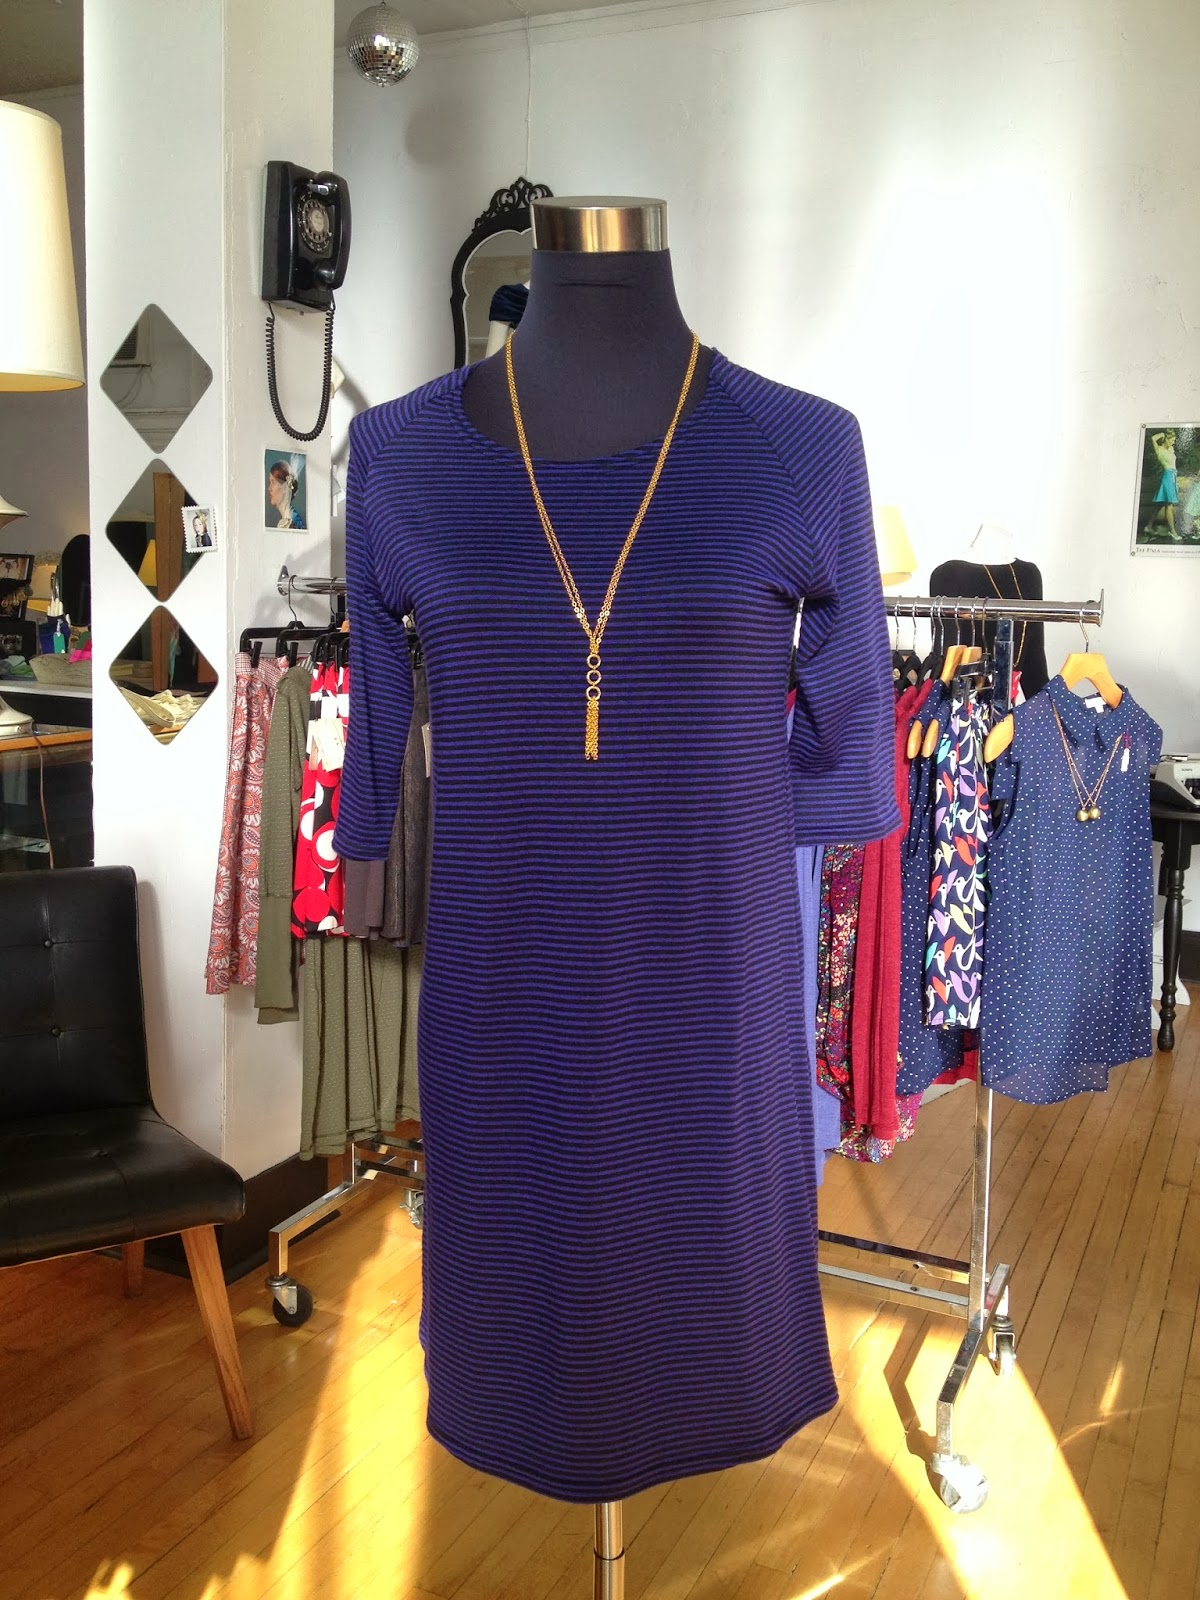 Sarah Bibb Vickie tunic with a Nicole Weldon necklace at Folly